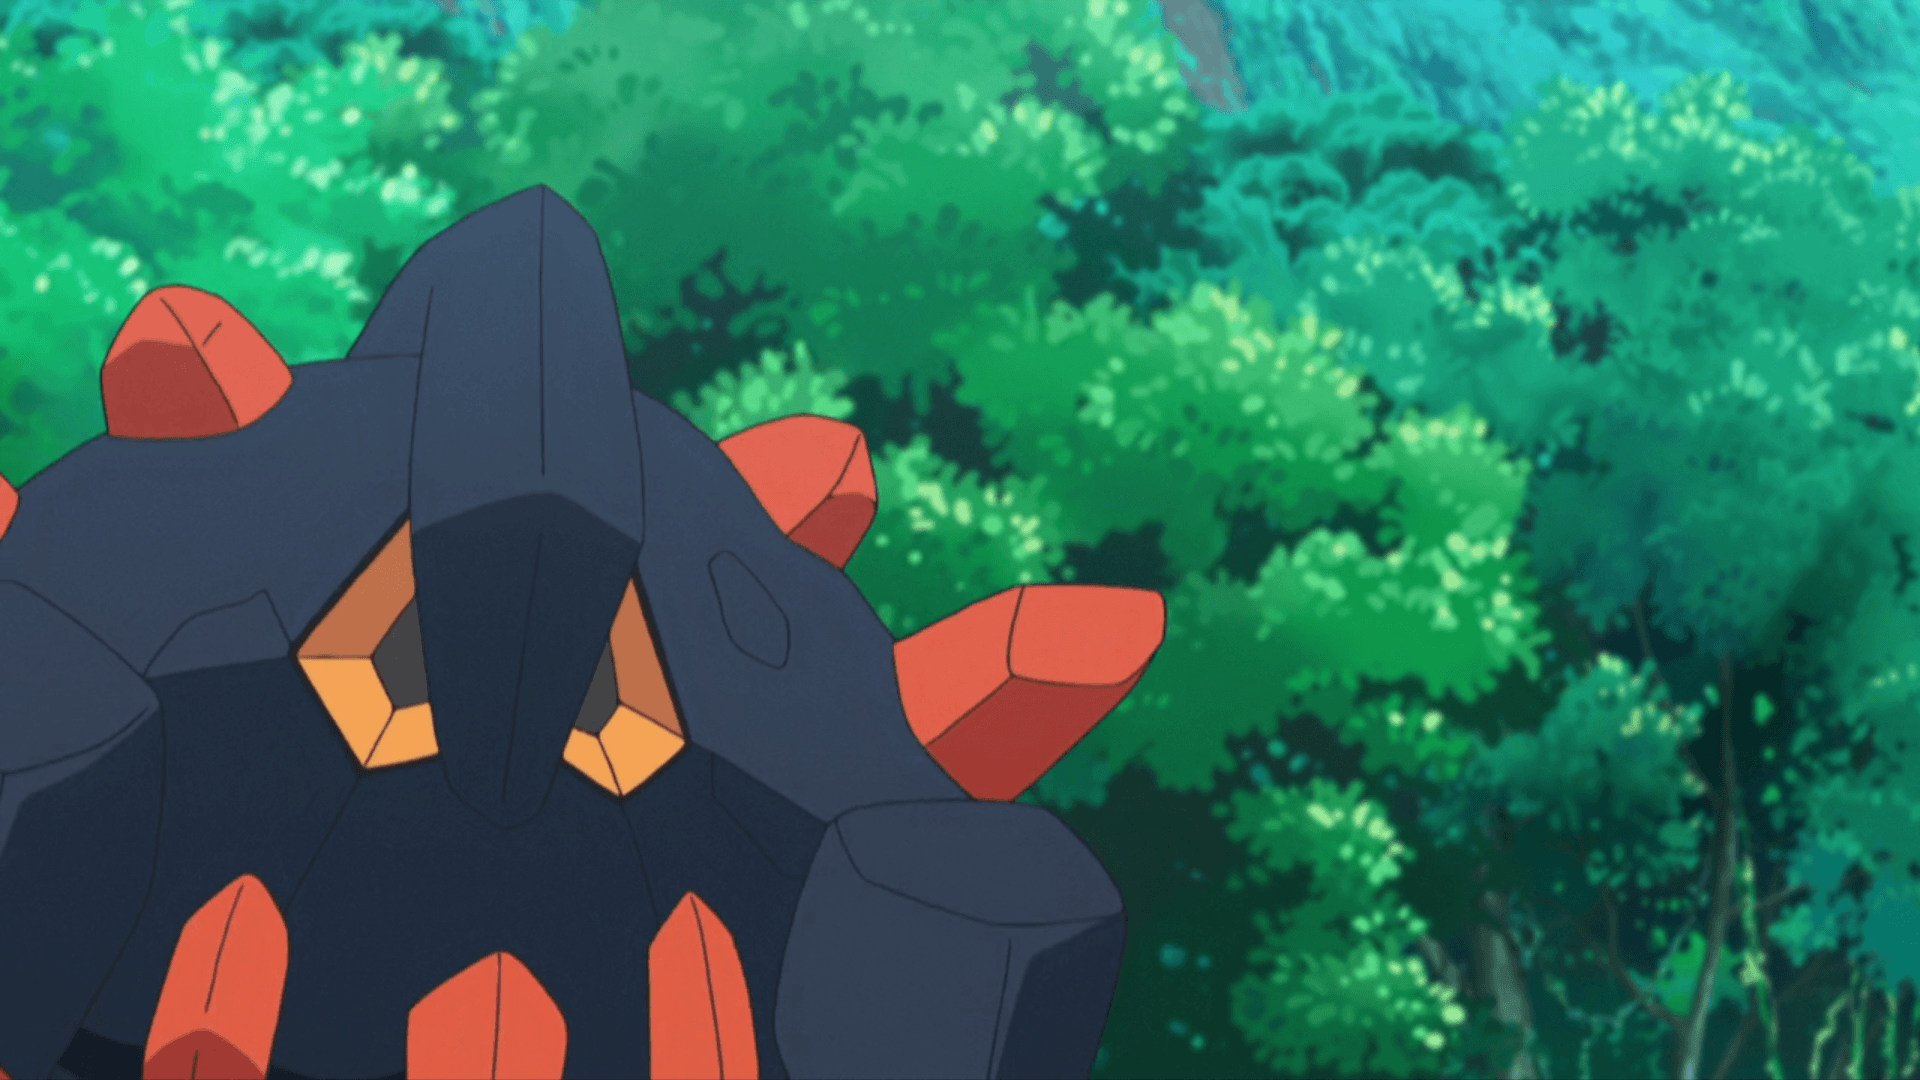 Viren's underling's Boldore | Pokémon Wiki | FANDOM powered by Wikia